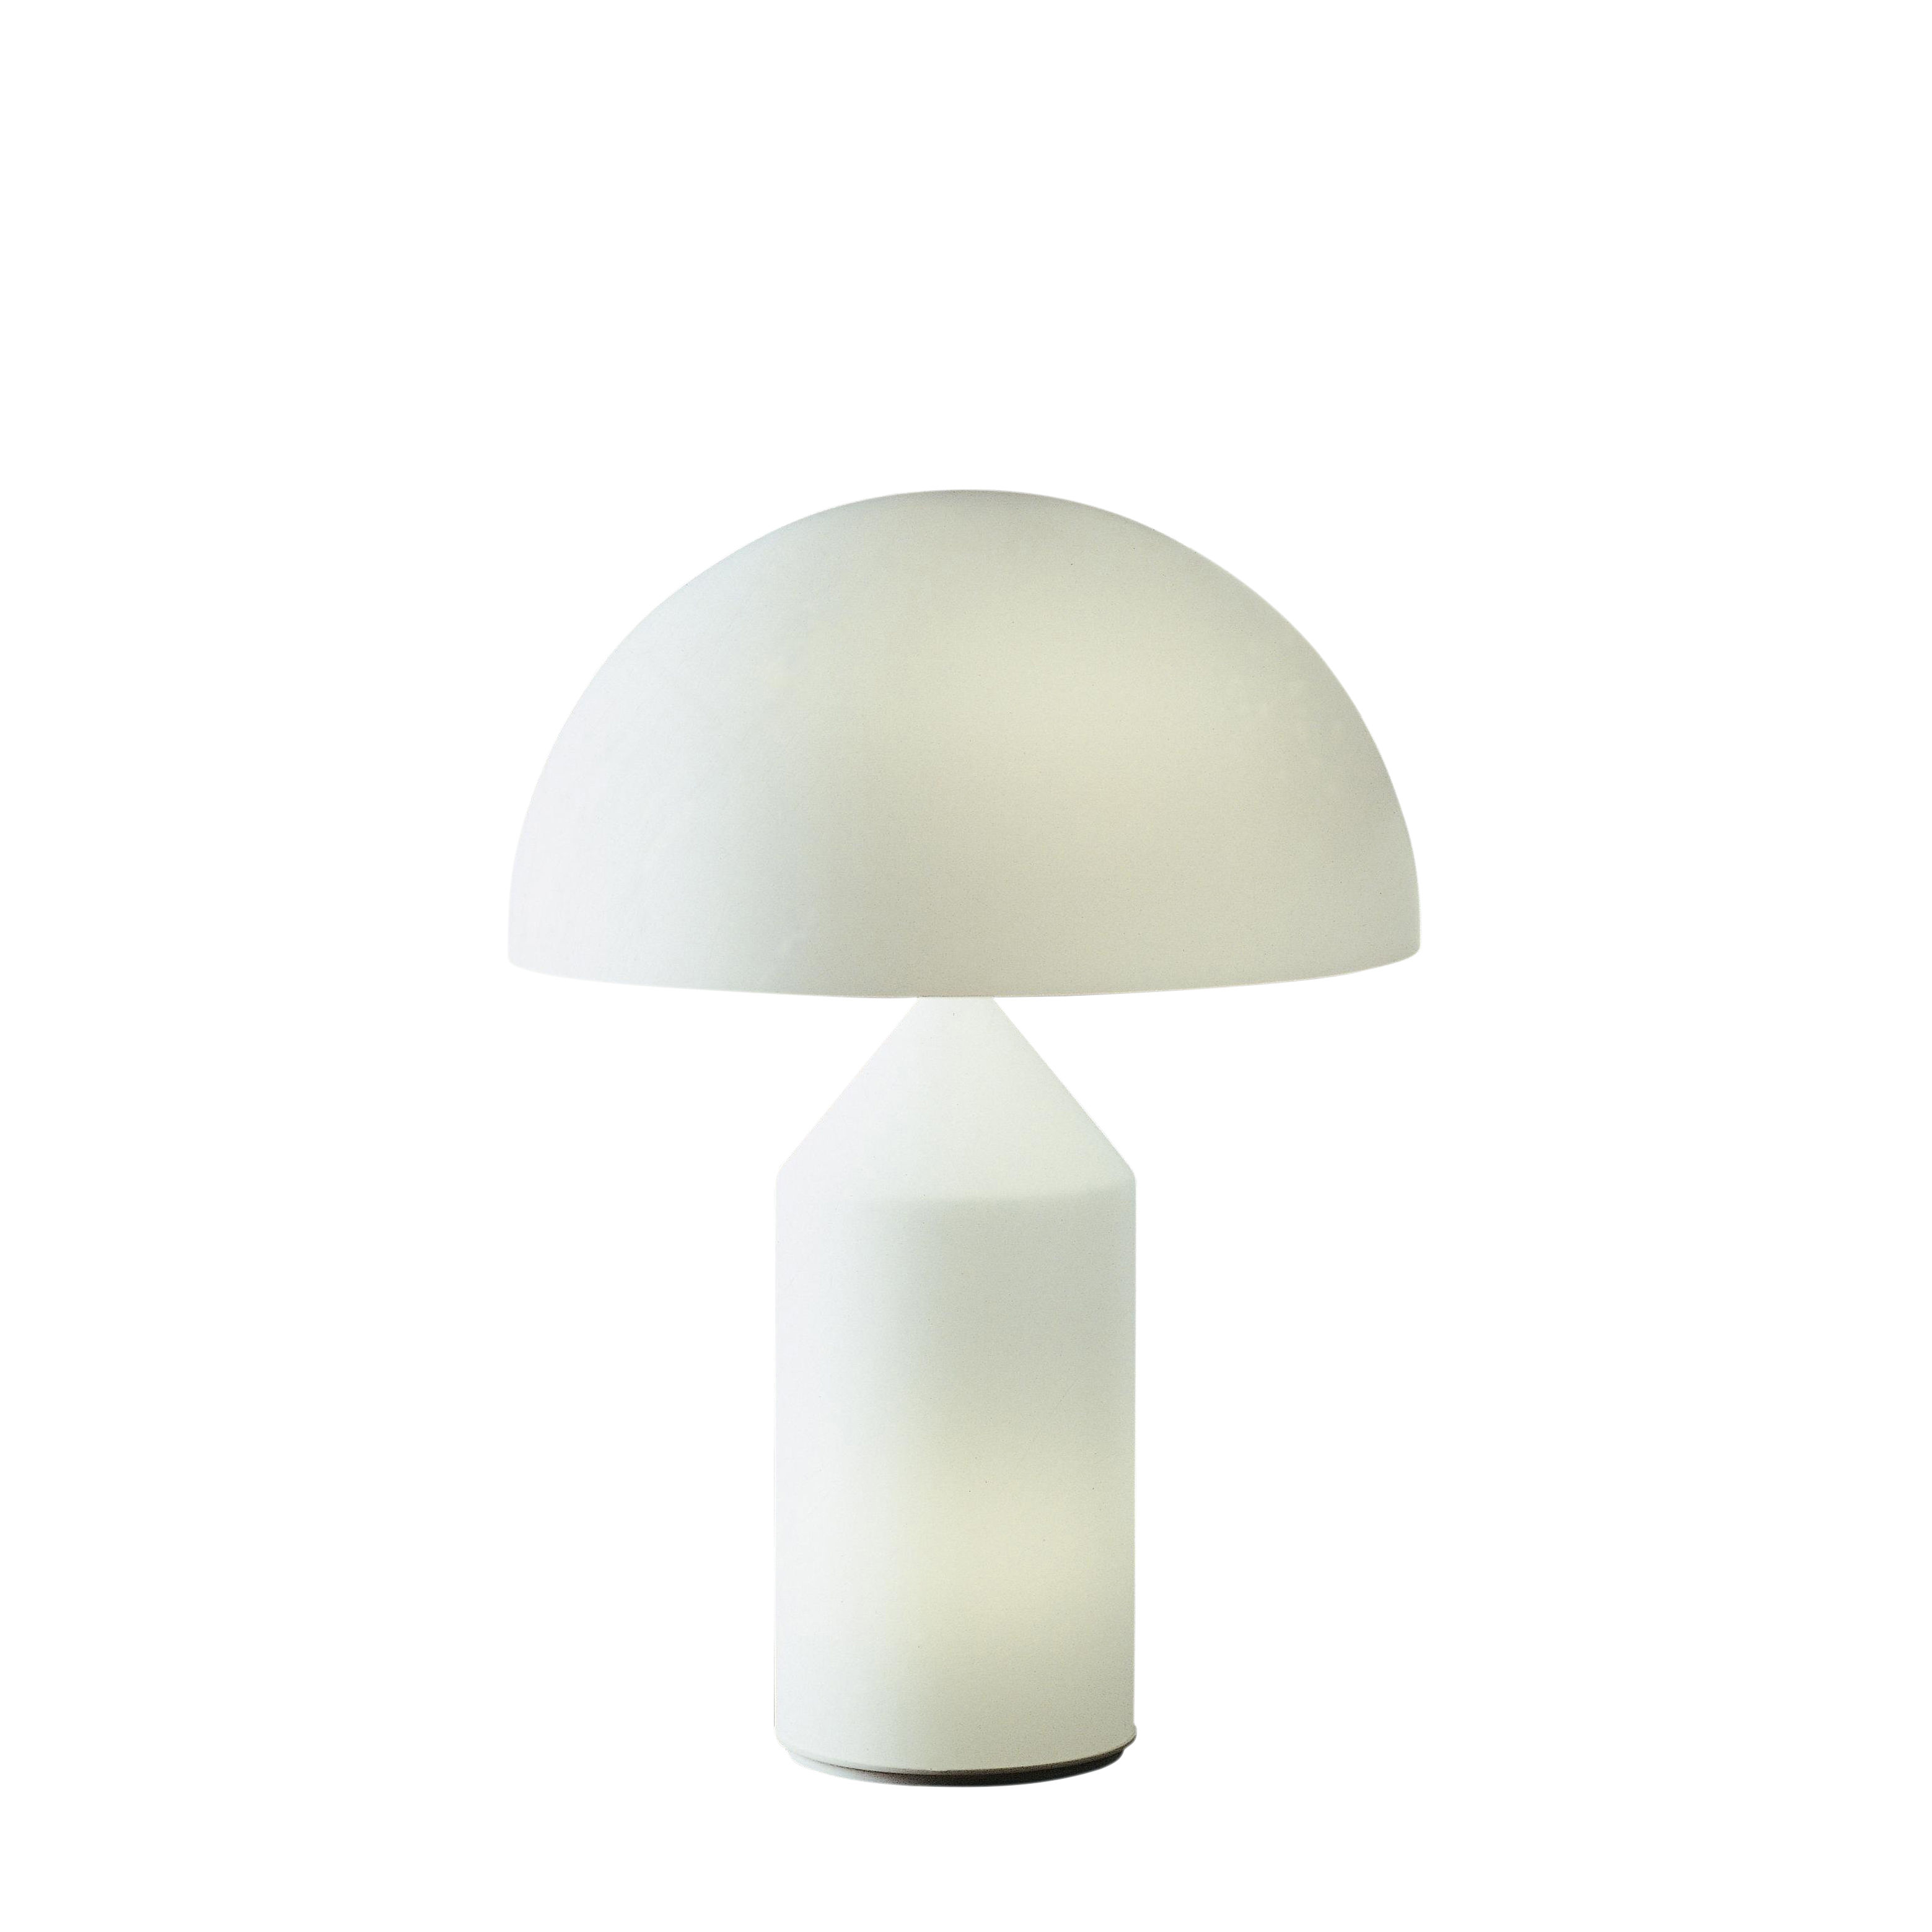 Lighting - Table Lamps - Atollo Medium Table lamp - Verre / H 50 cm / Vico Magistretti, 1977 by O luce - Opal white - Blown glass from Murano